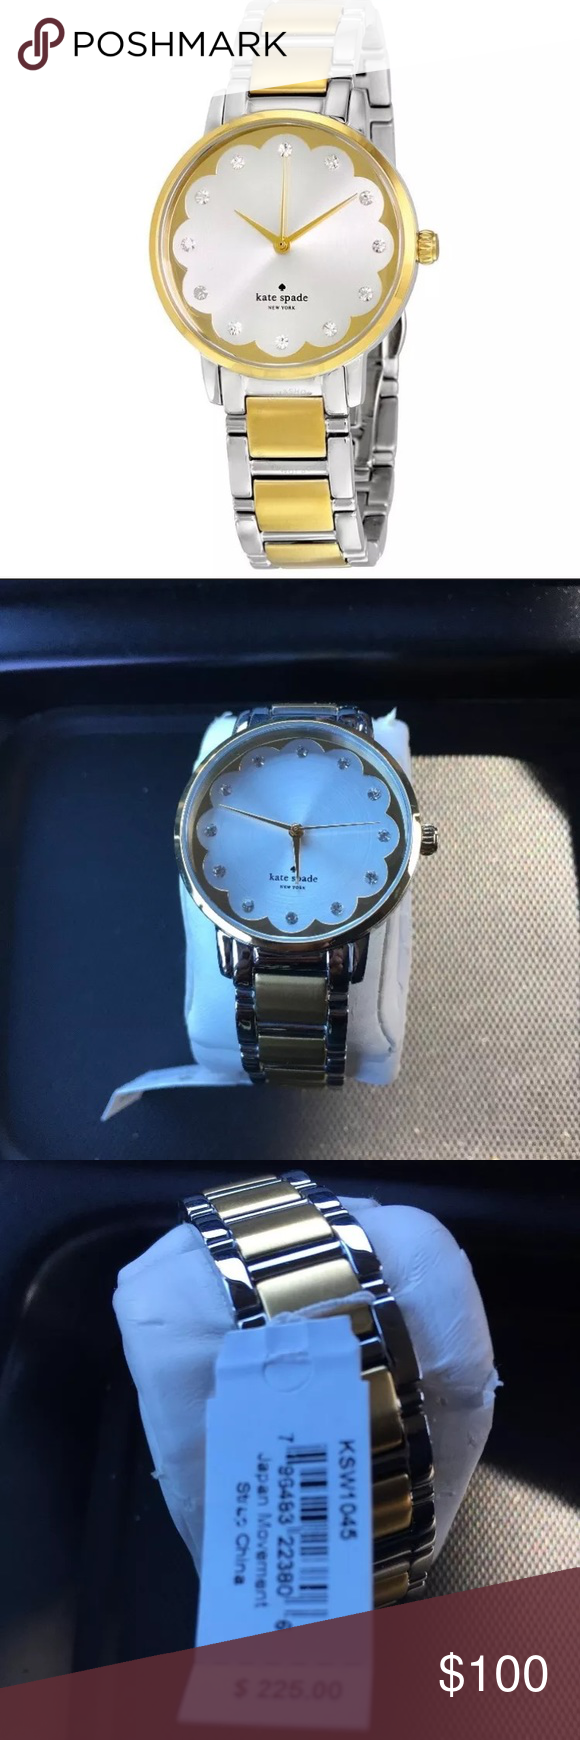 Kate spade watch u new without box u just watch with working battery